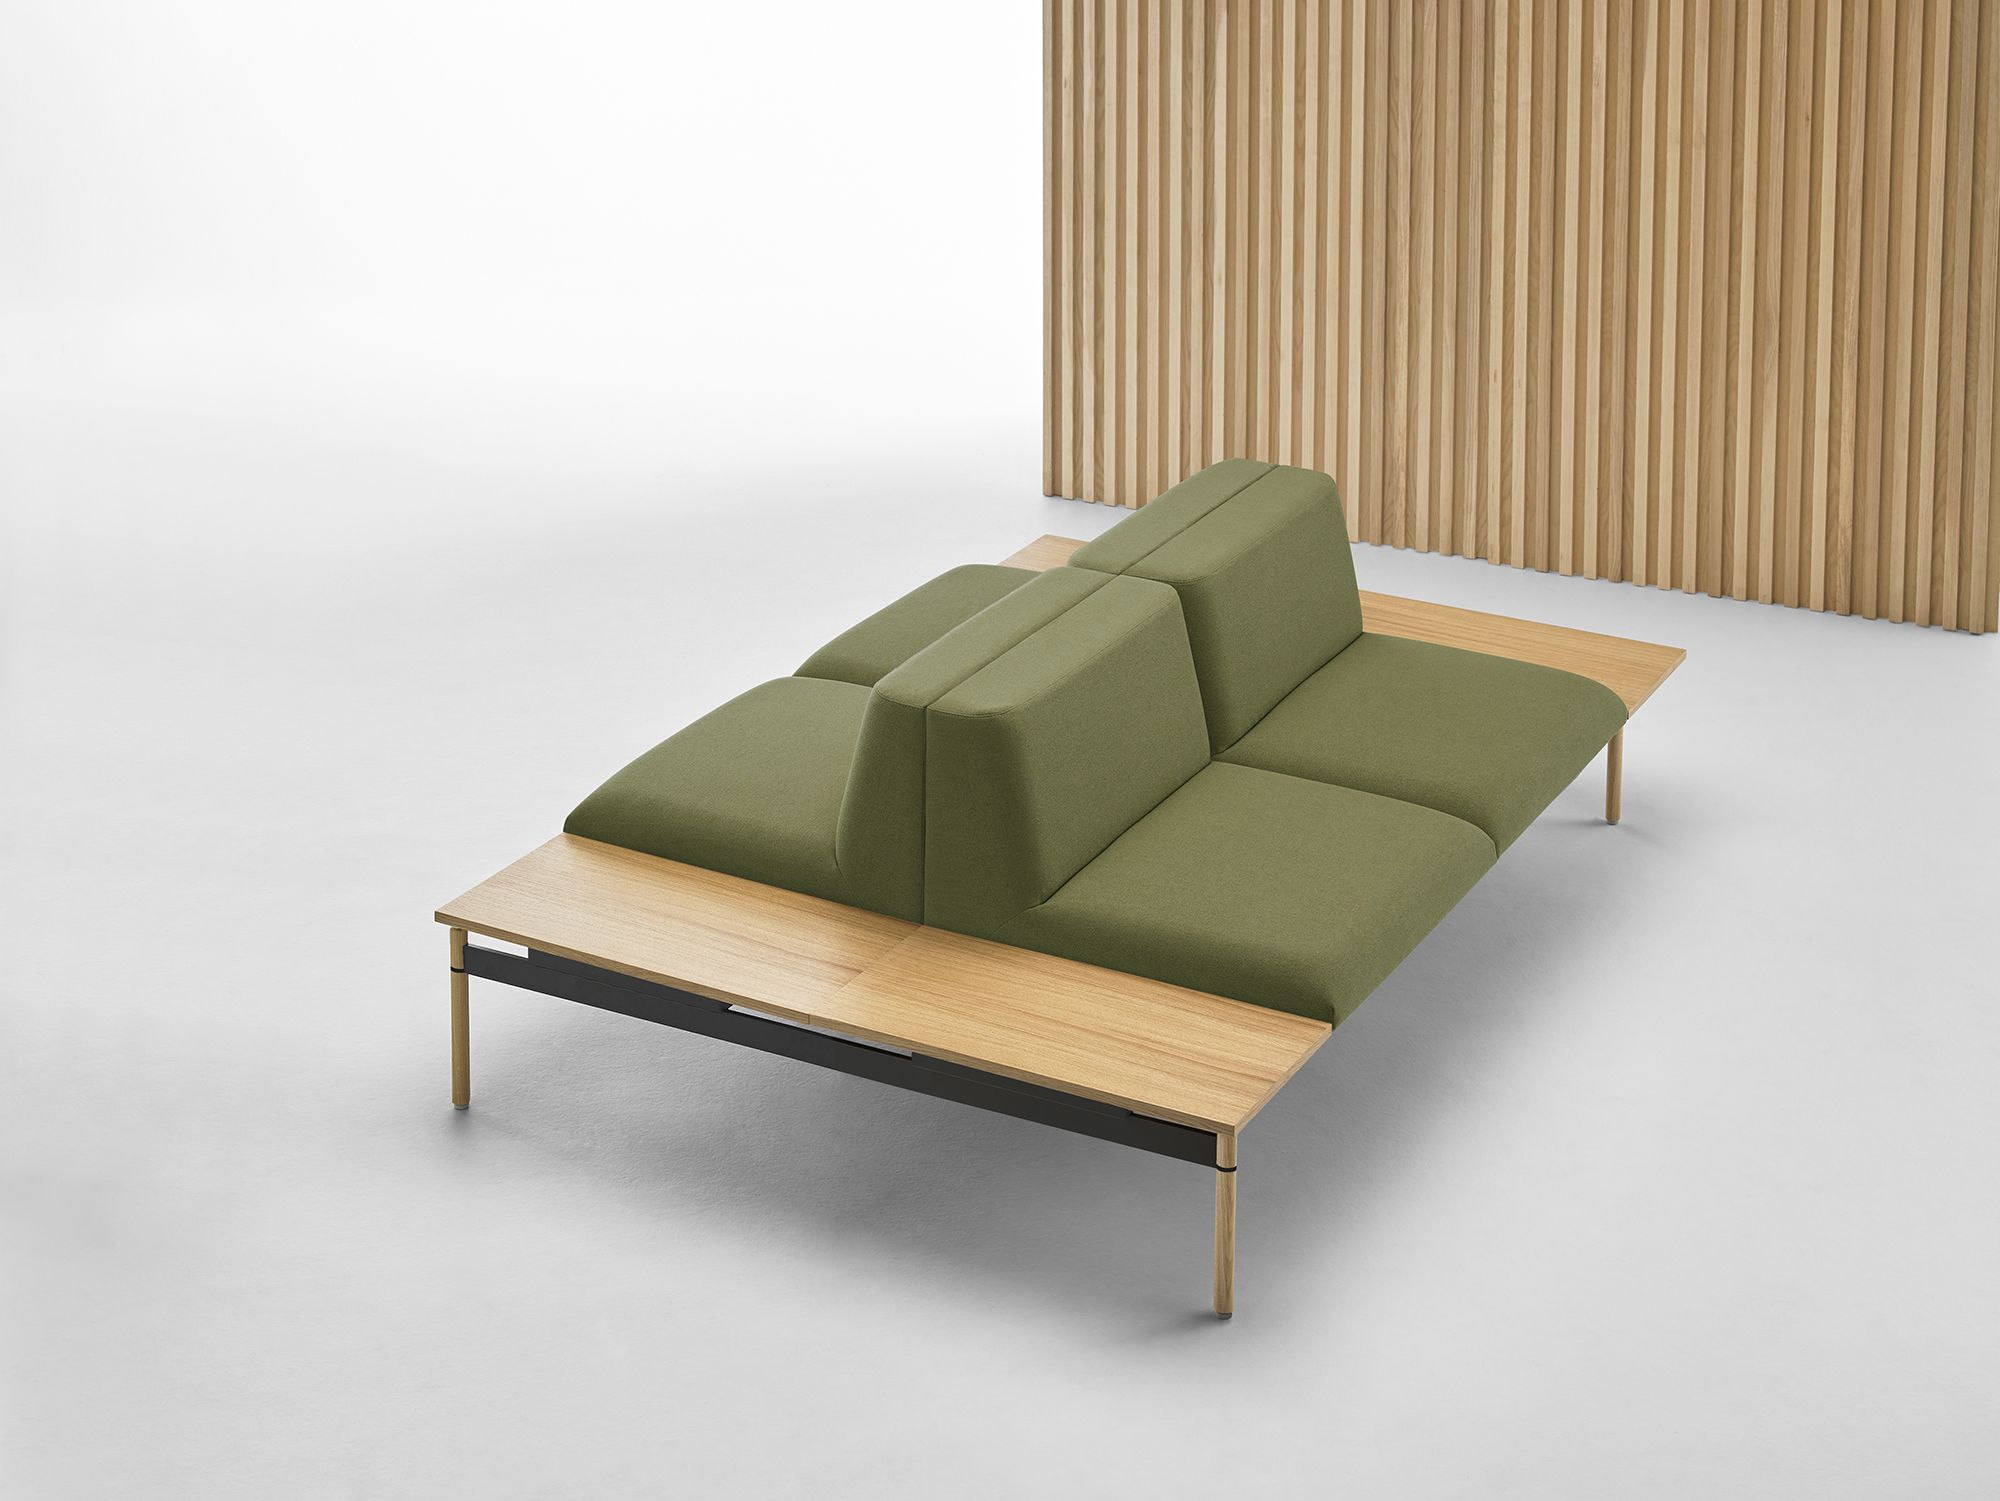 Lapse In Green Designed By Carlos Tiscar The Collection Incorporates Upholstered Seats On A Ste Hospital Furniture Upholstered Bench Hospital Interior Design